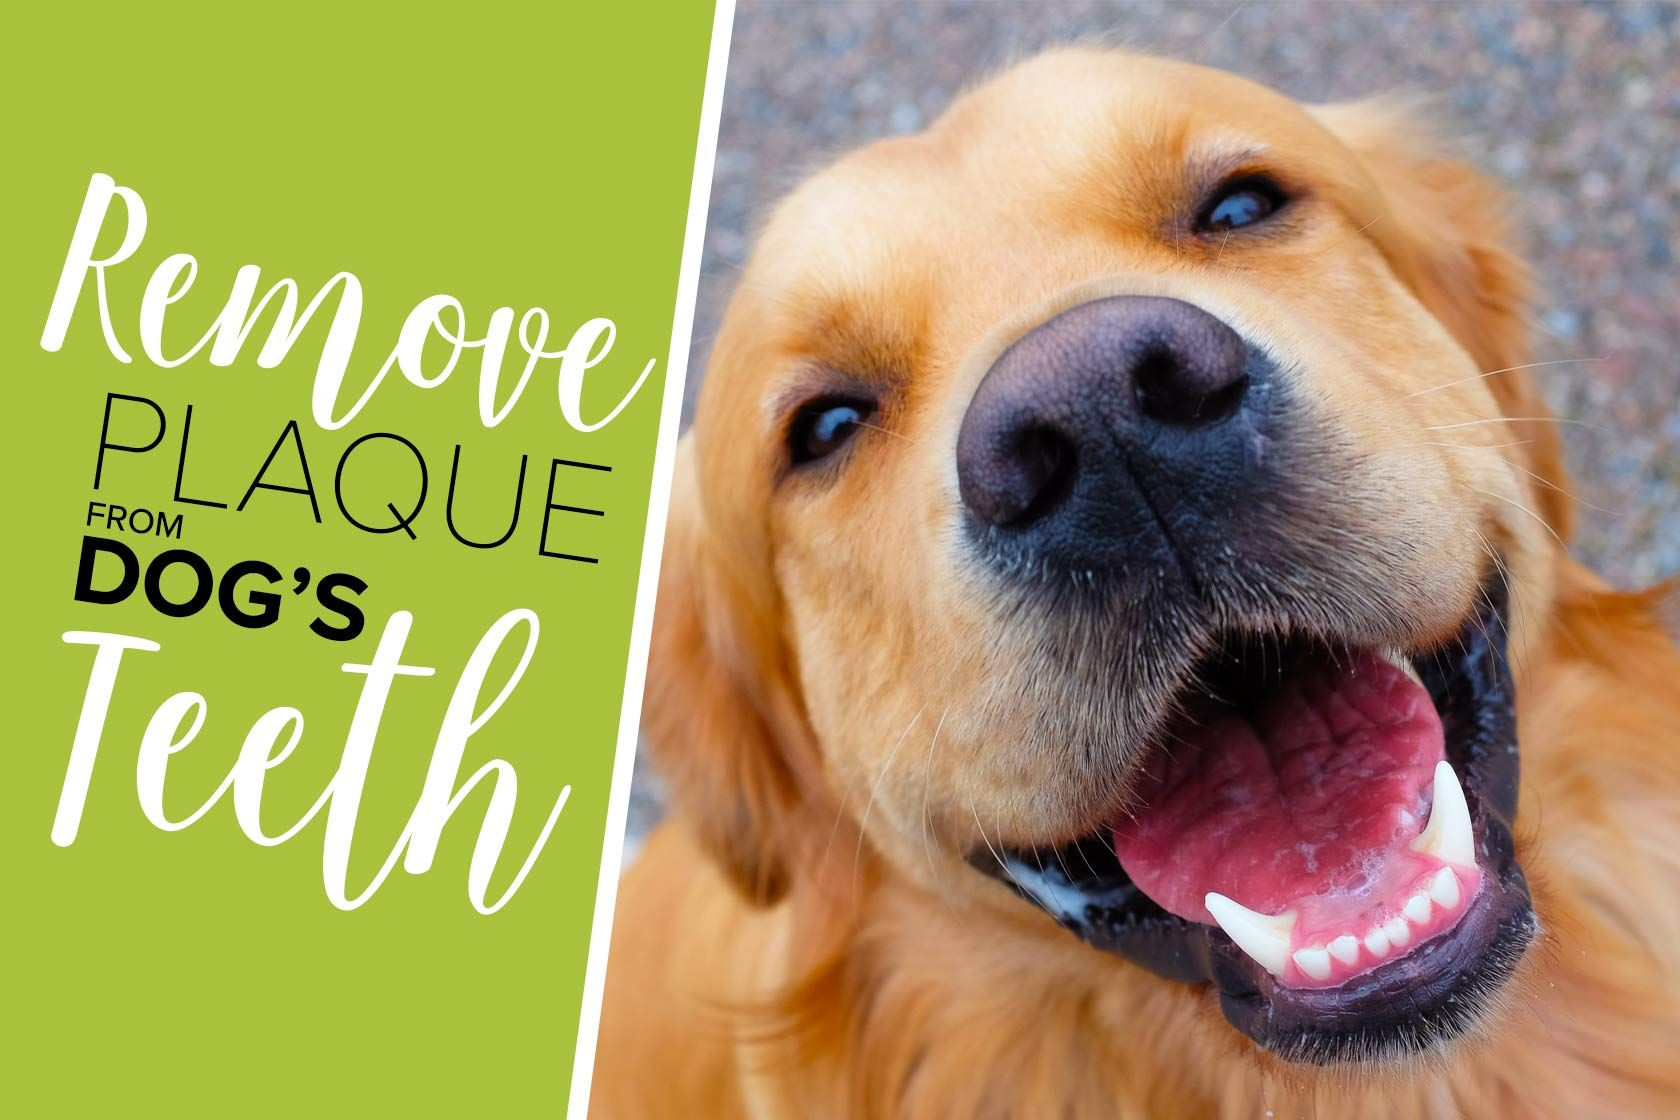 how to remove tartar from dog teeth